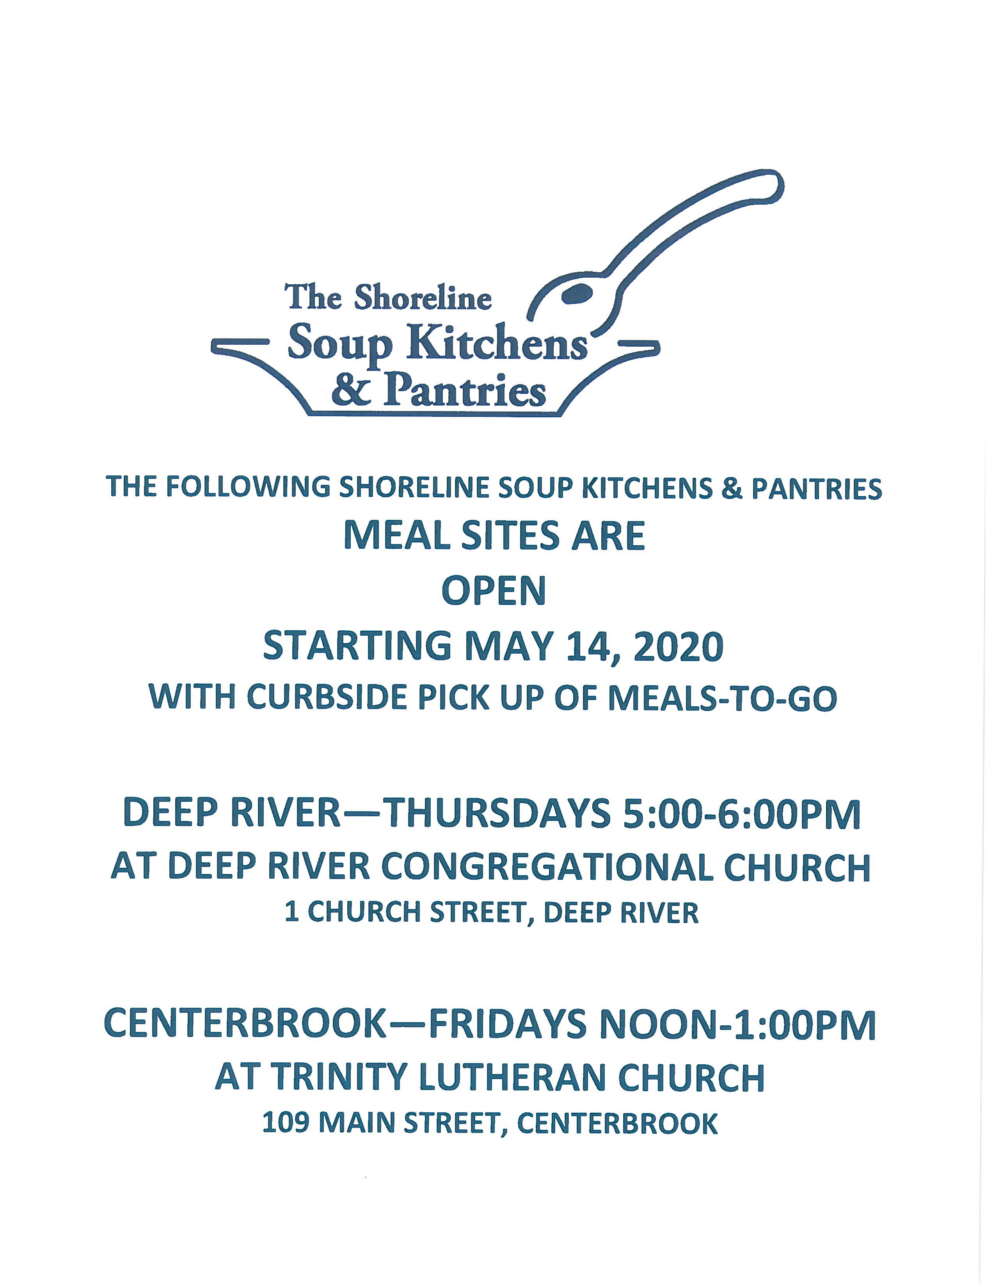 Shoreline Soup Kitchen and Pantries - Meal Sites Open